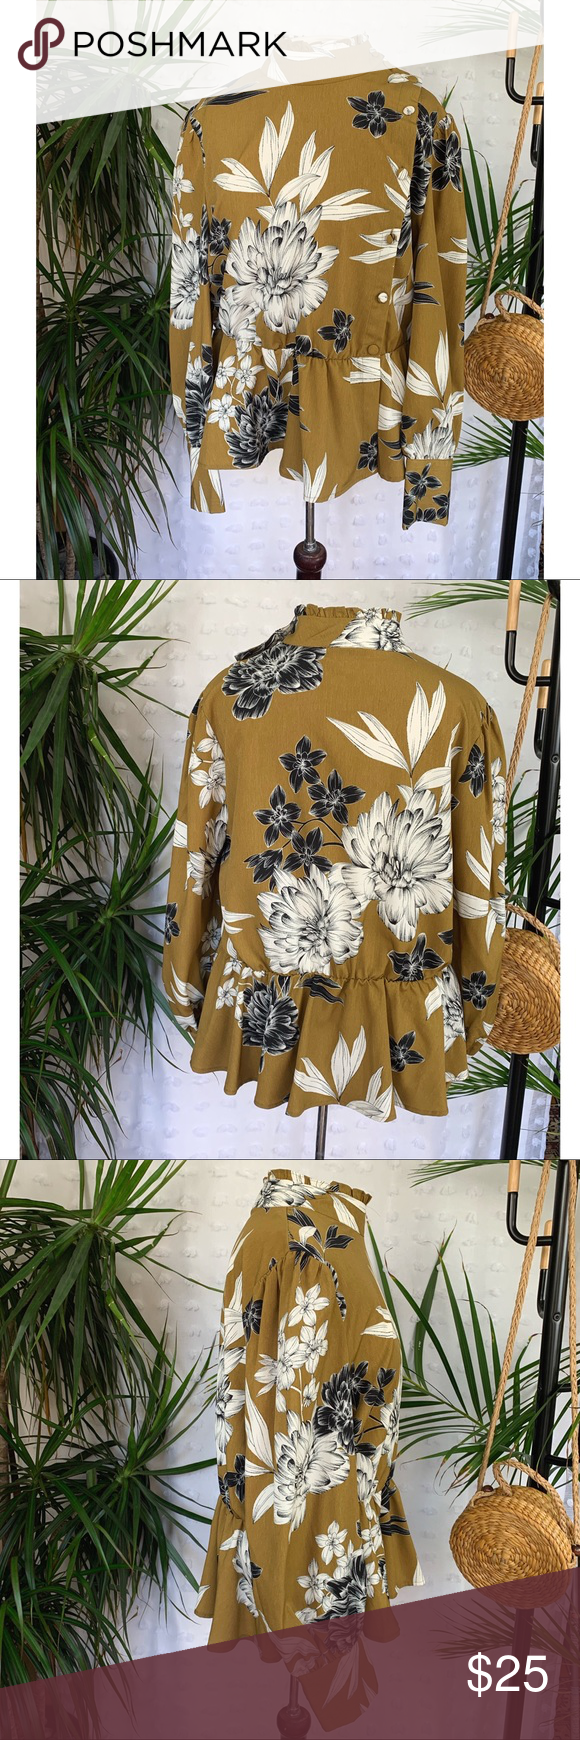 WHO WHAT WEAR Mustard Floral Blouse I just added this listing on Poshmark: WHO WHAT WEAR Mustard Floral Blouse. What Wear